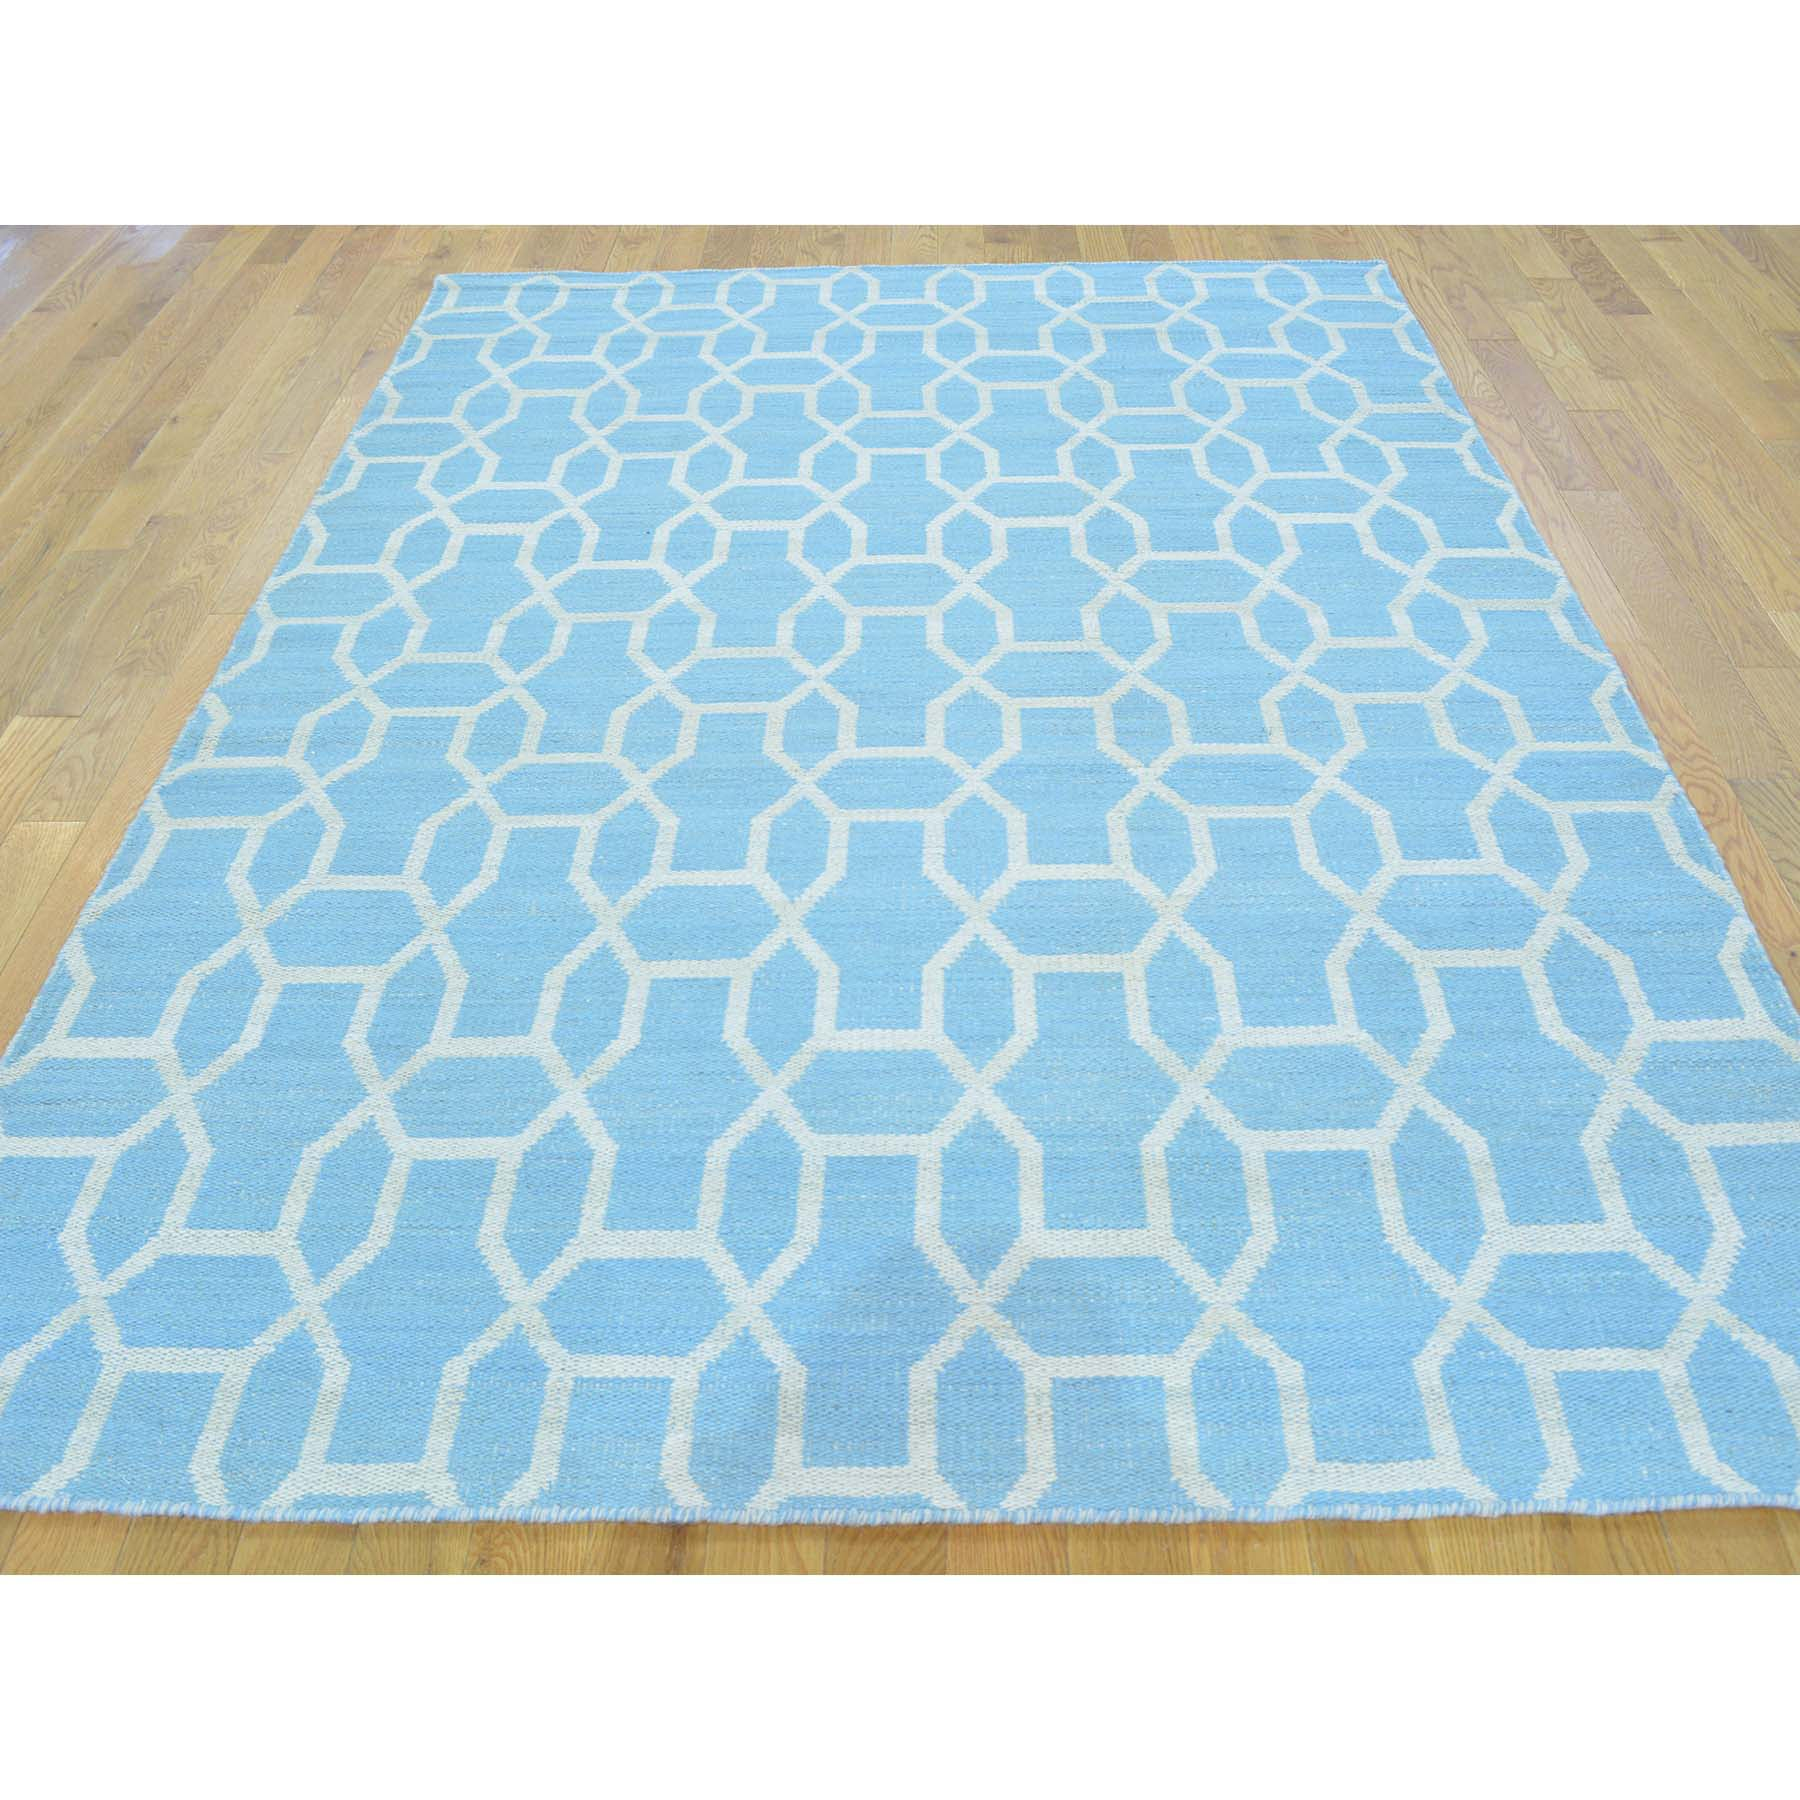 "Handmade Flat Weave Rectangle Rug > Design# SH26393 > Size: 5'-4"" x 7'-3"" [ONLINE ONLY]"